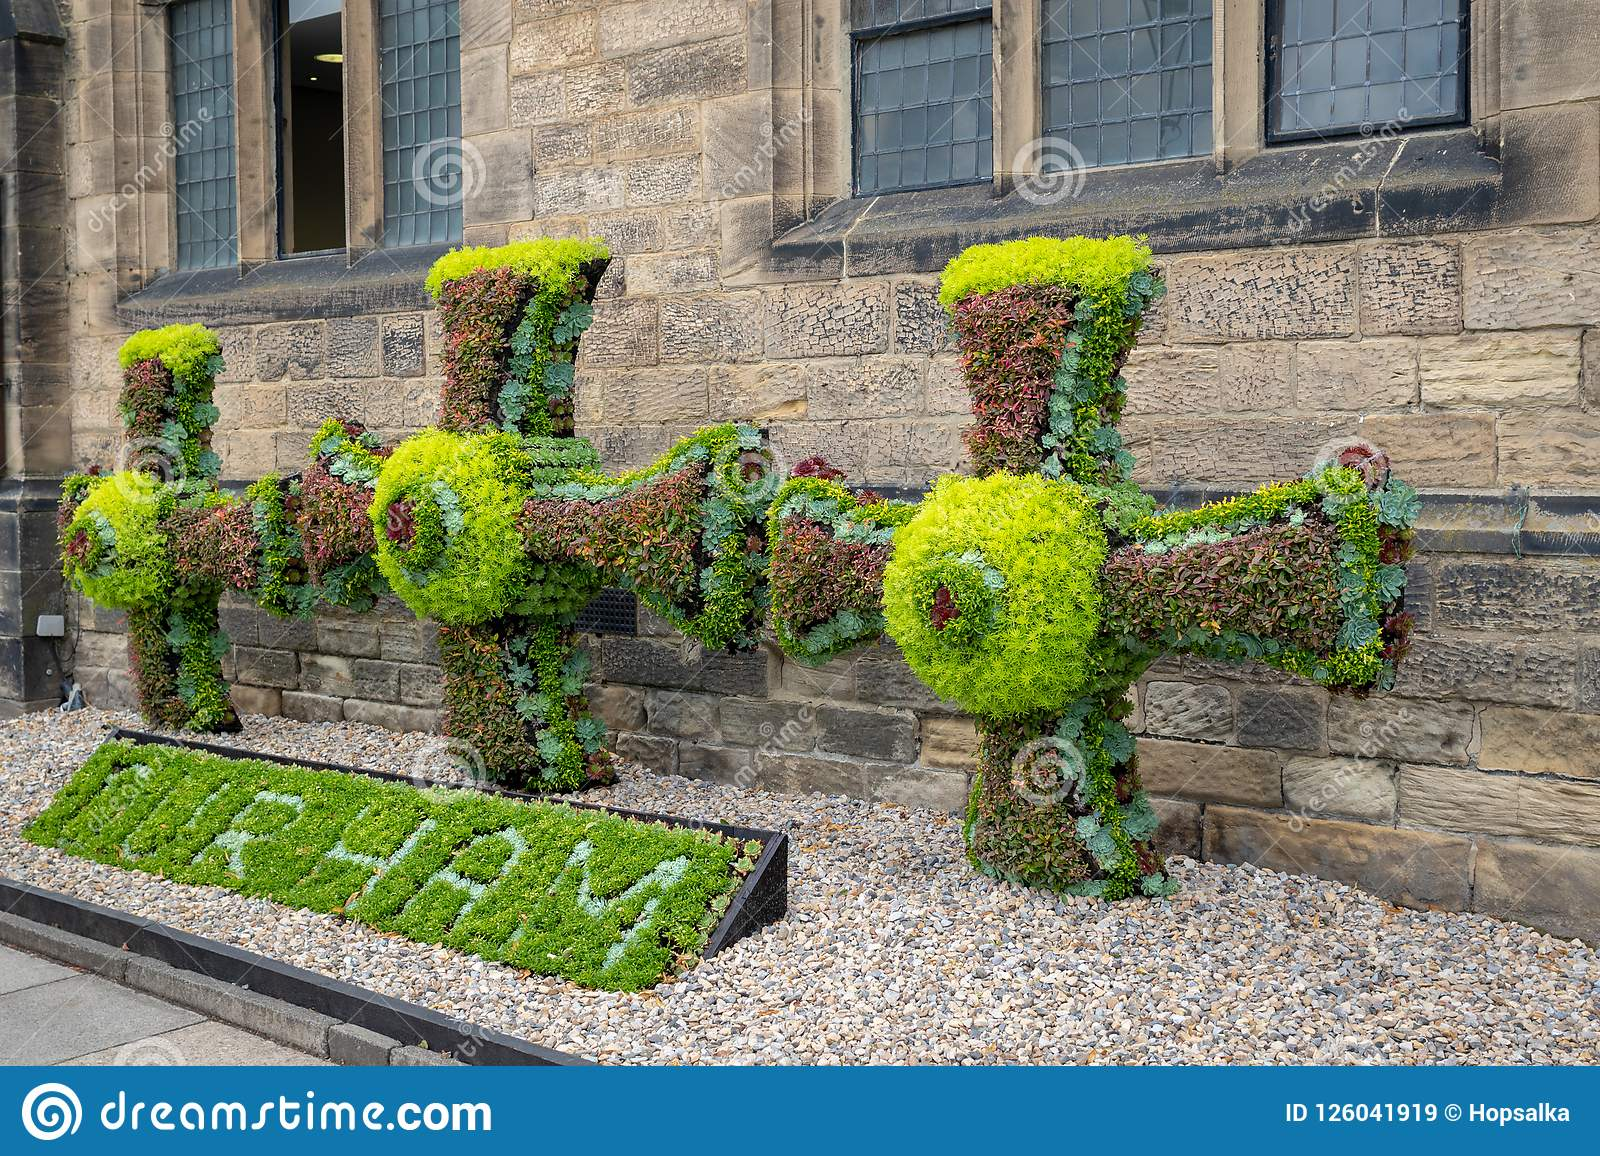 Floral Decoration In The He Center Of Historic Town Durham Uk